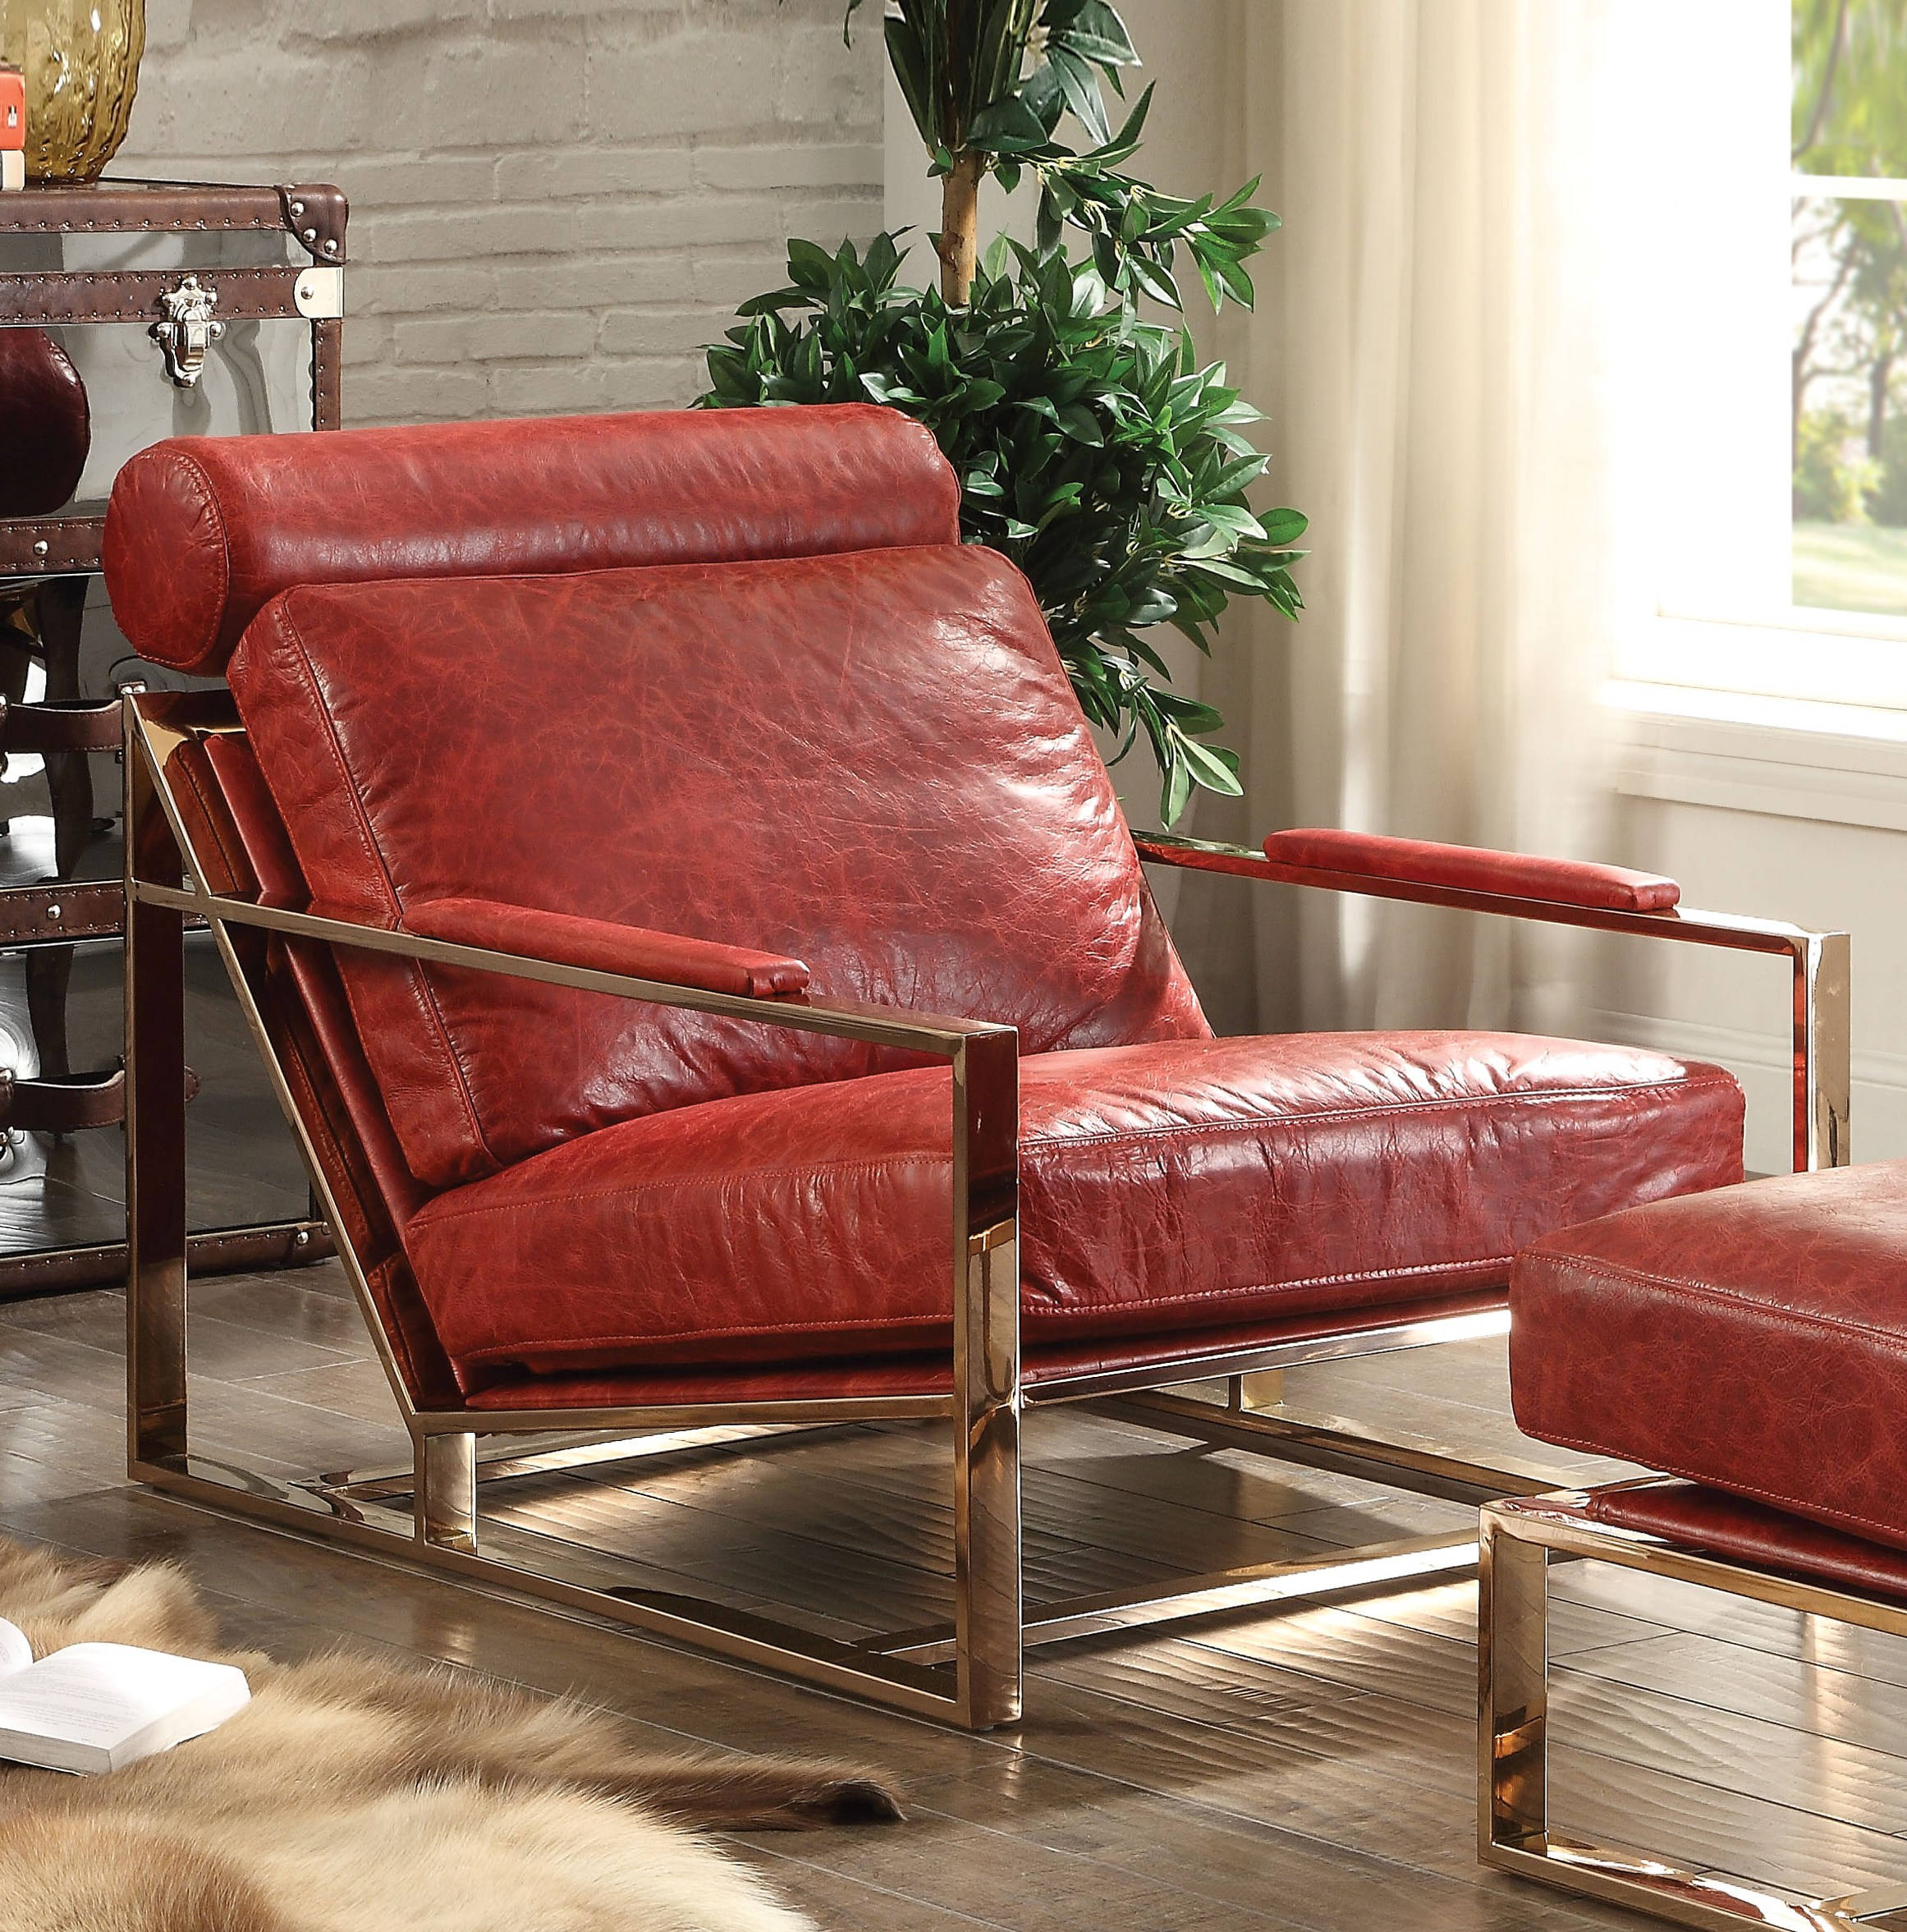 Acme Furniture Quinto Antique Red Accent Chair Click To Enlarge ...